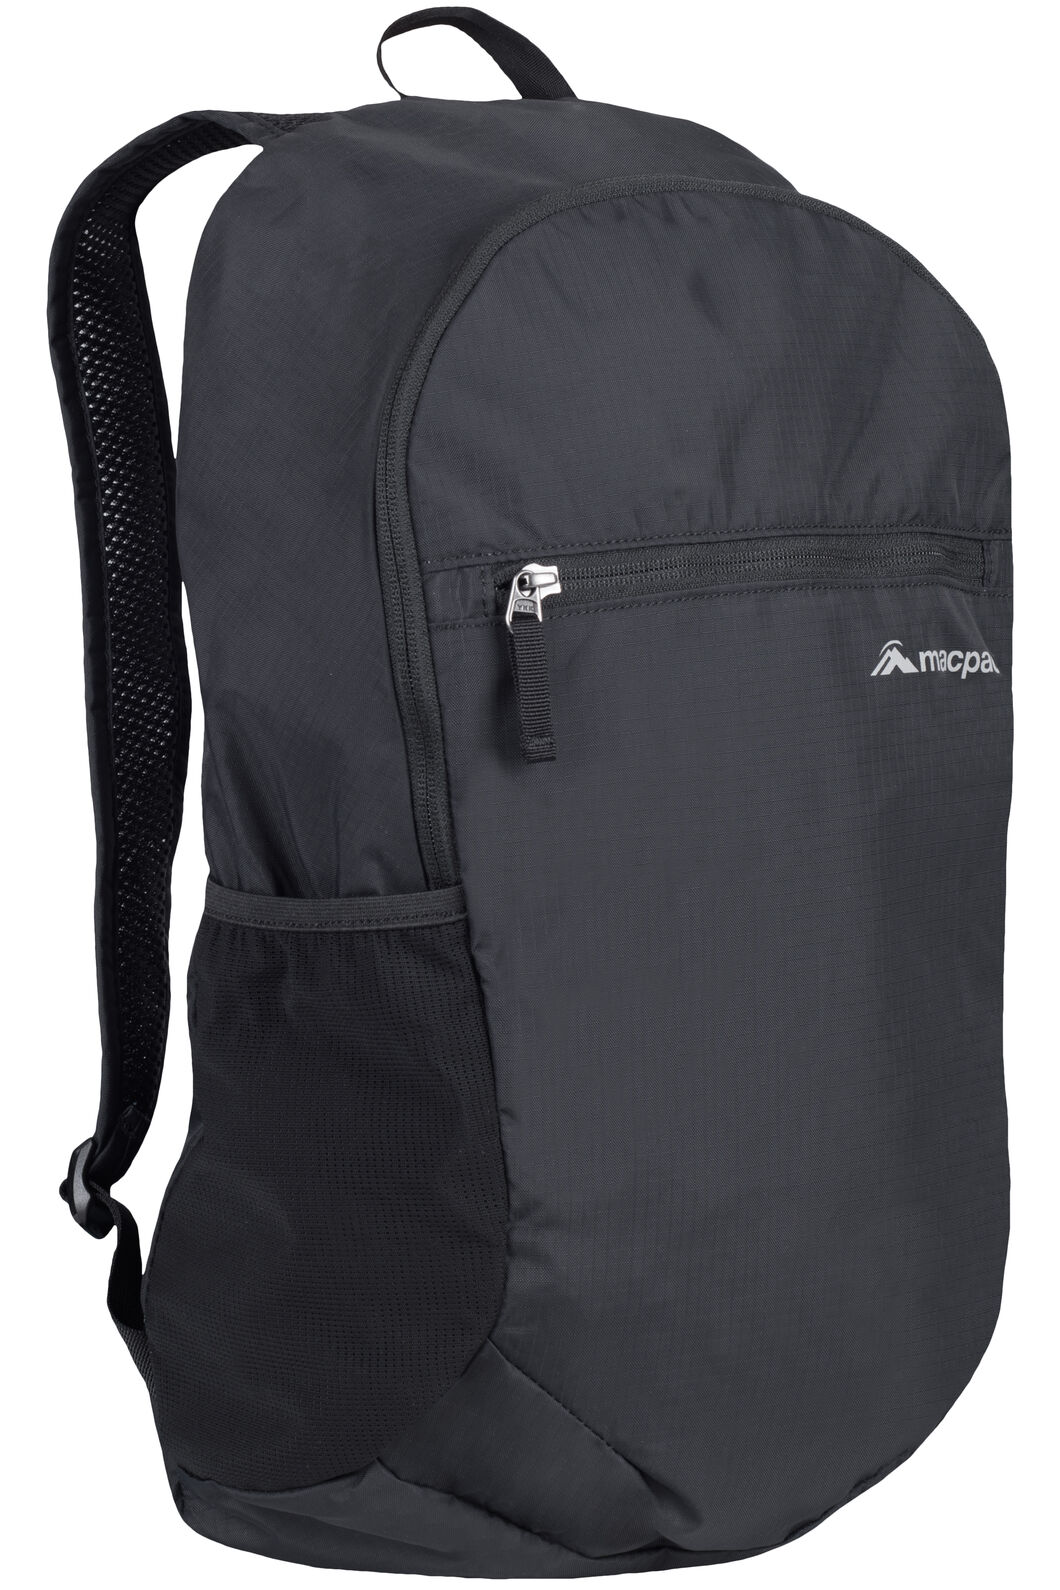 Macpac Pack-It-Pack, Black, hi-res